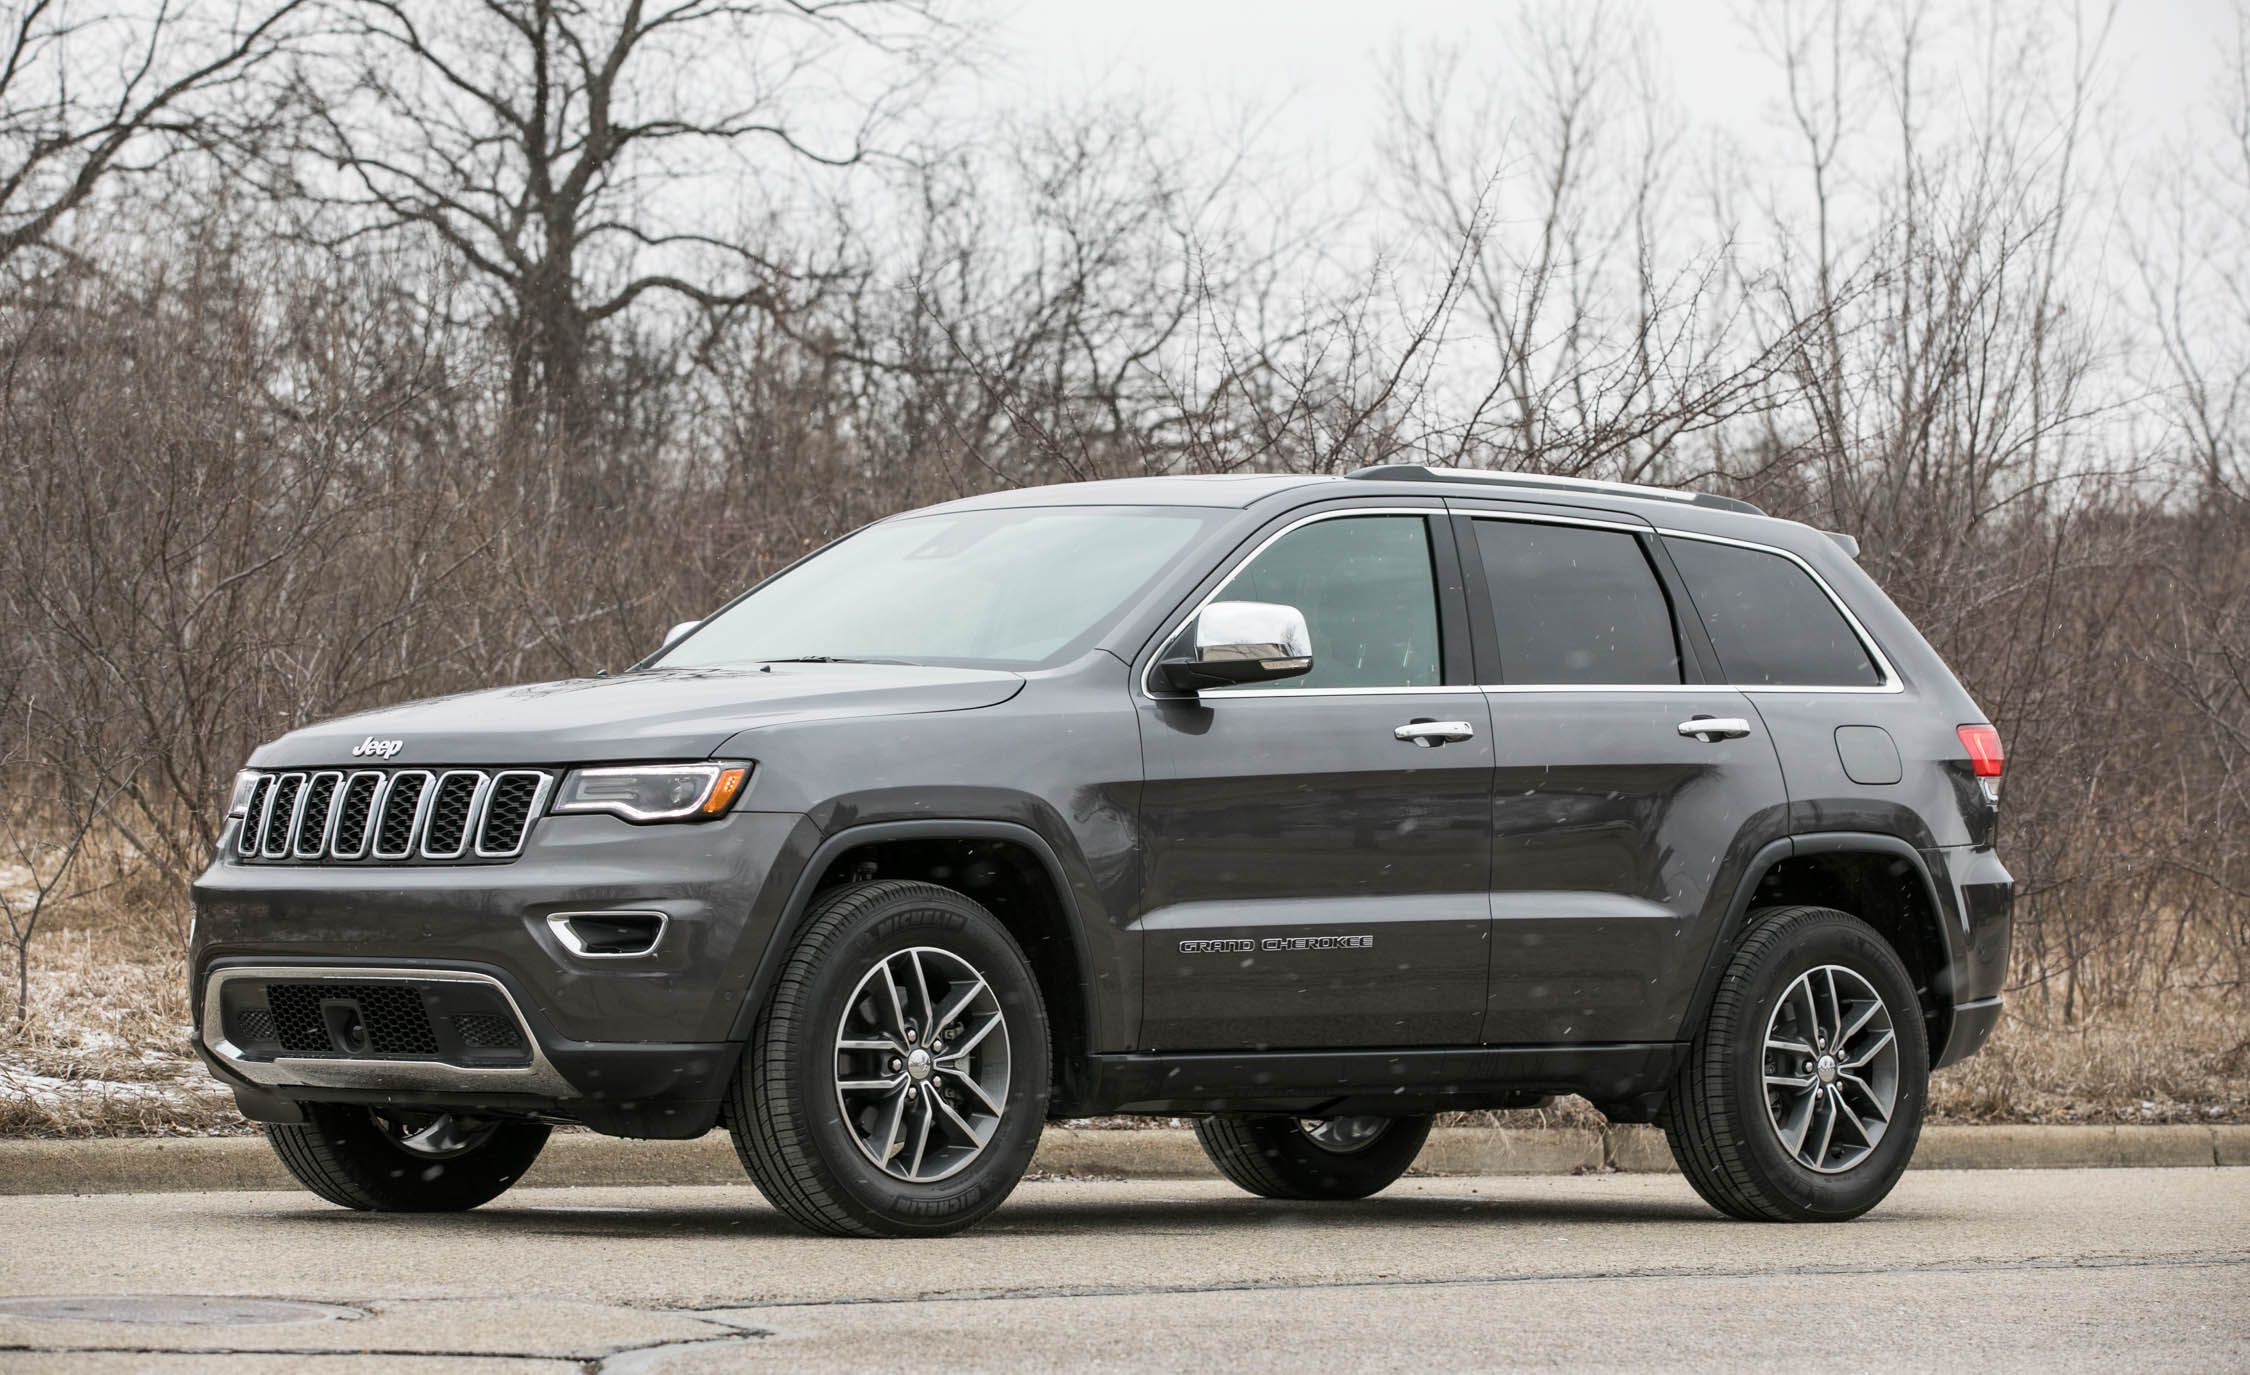 Jeep Grand Cherokee 2018 Review >> 2019 Jeep Grand Cherokee Reviews Jeep Grand Cherokee Price Photos